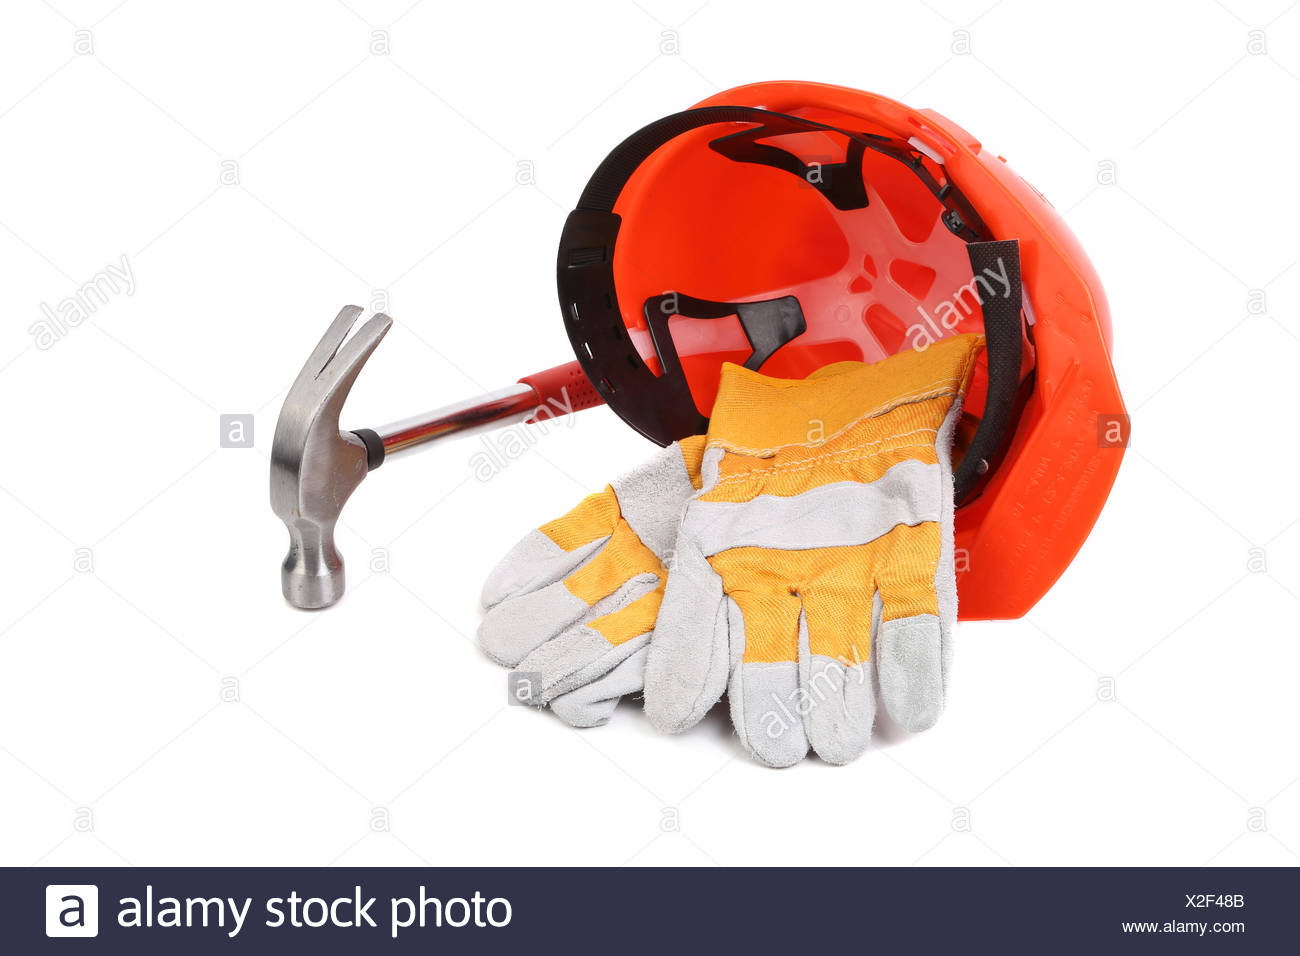 Hard head gloves and hammer. Stock Photo